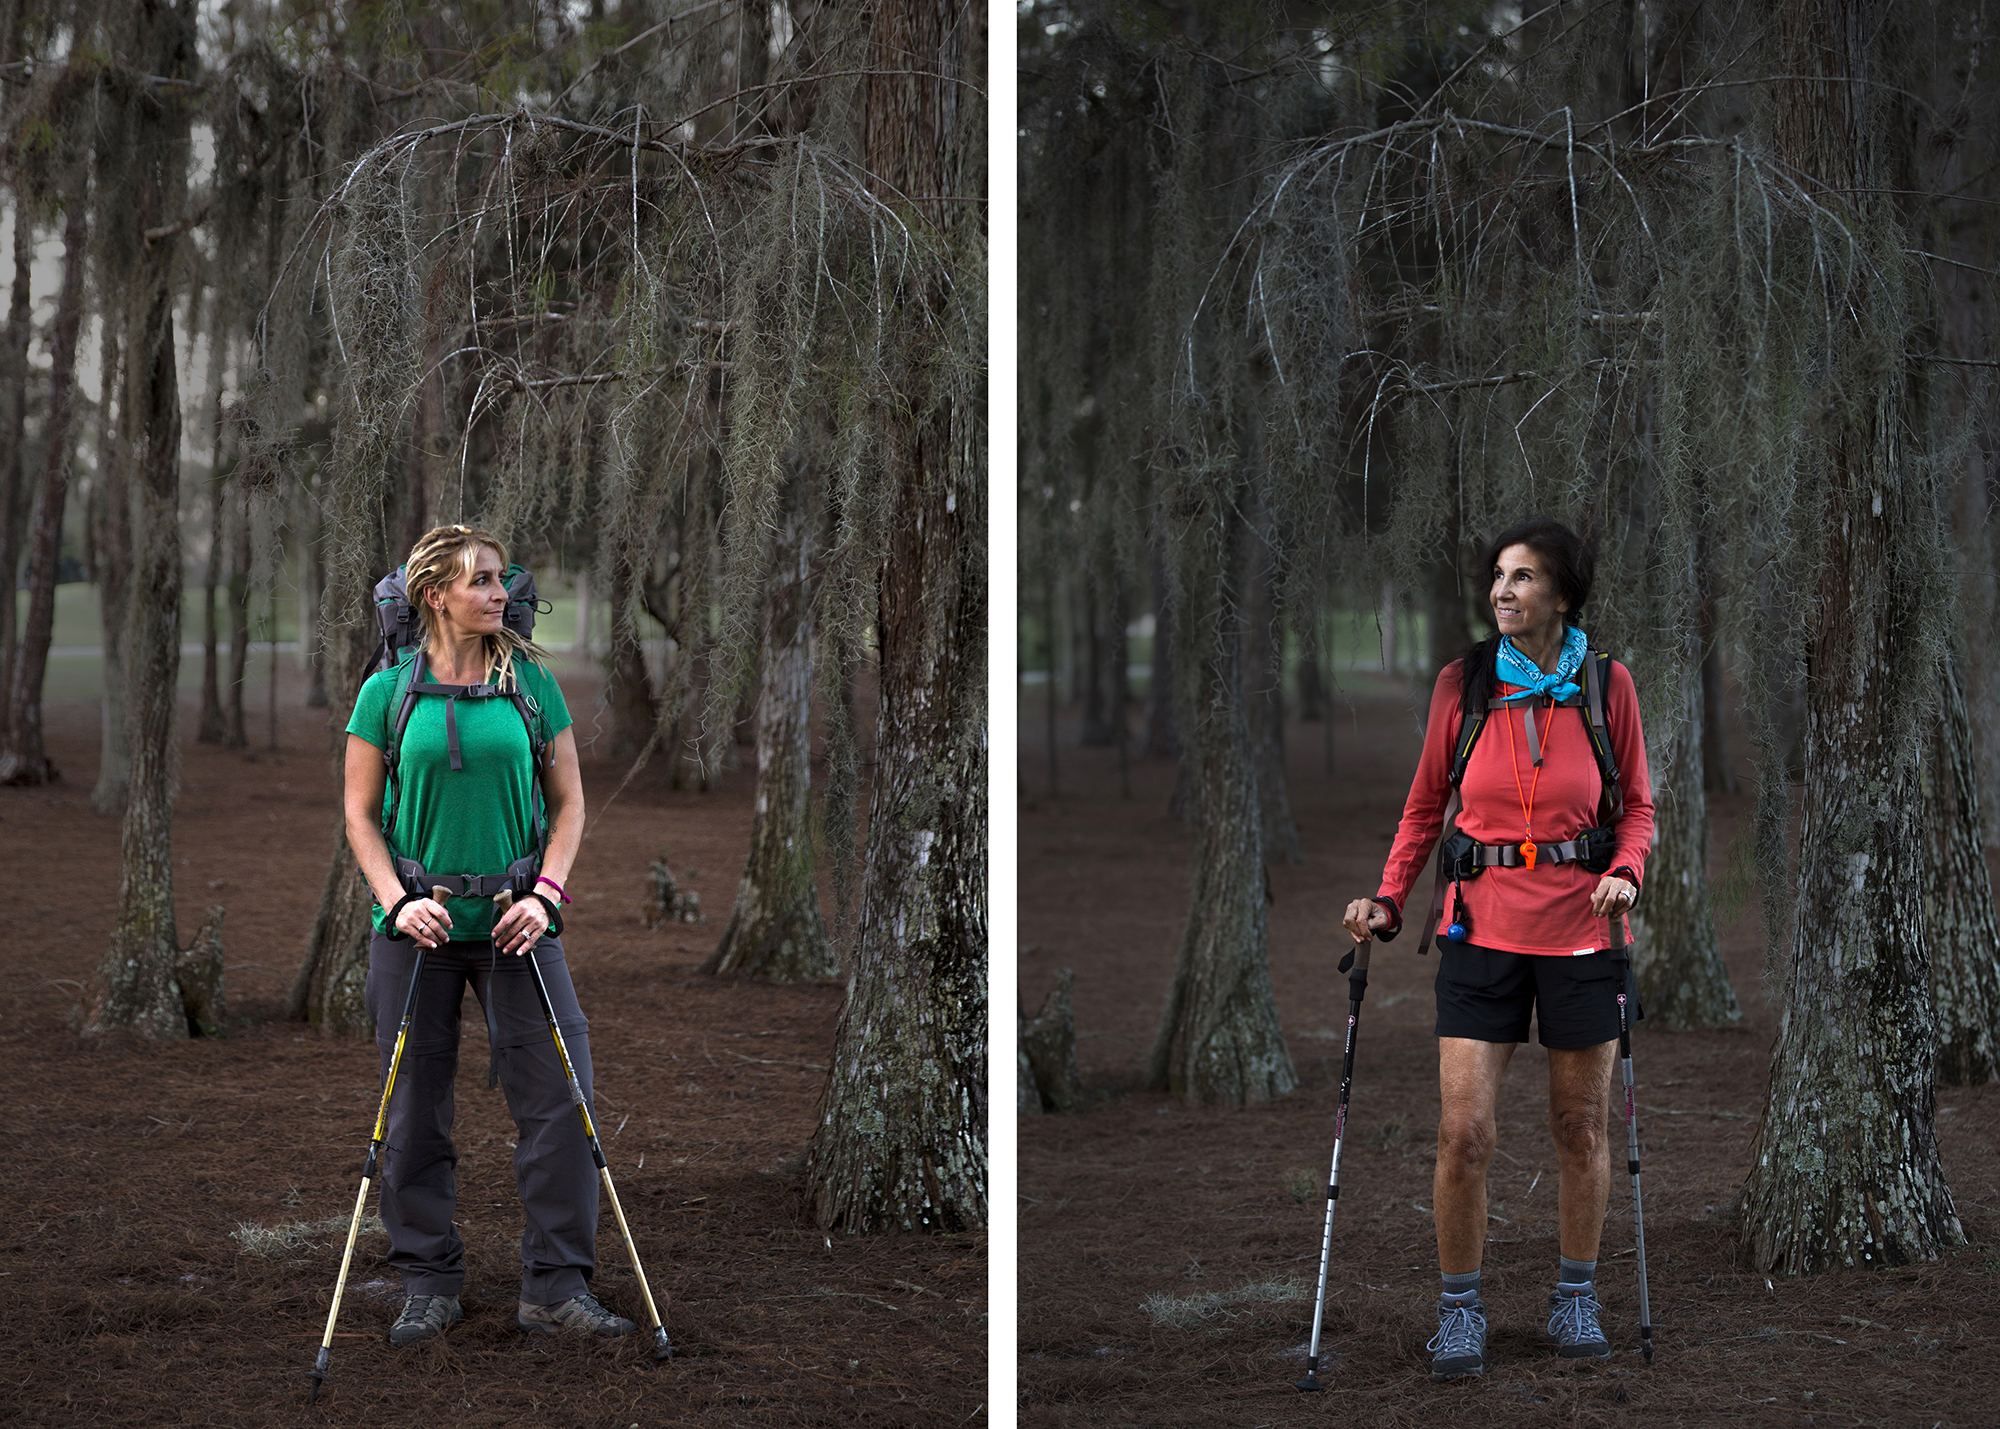 Lisa Maloney, left, and her mother, Margo Moulton Snyder, pose for portraits with their hiking gear on Friday, December 16, 2016 in Snyder's backyard in Golden Gate Estates. At the beginning of 2016, Snyder and her daughter committed to try the trail as a new year's resolution. They hiked three days, sleeping in lodges along the way, starting in Virginia's Shenandoah Valley in August. They have another adventure filled trip planned for 2017.